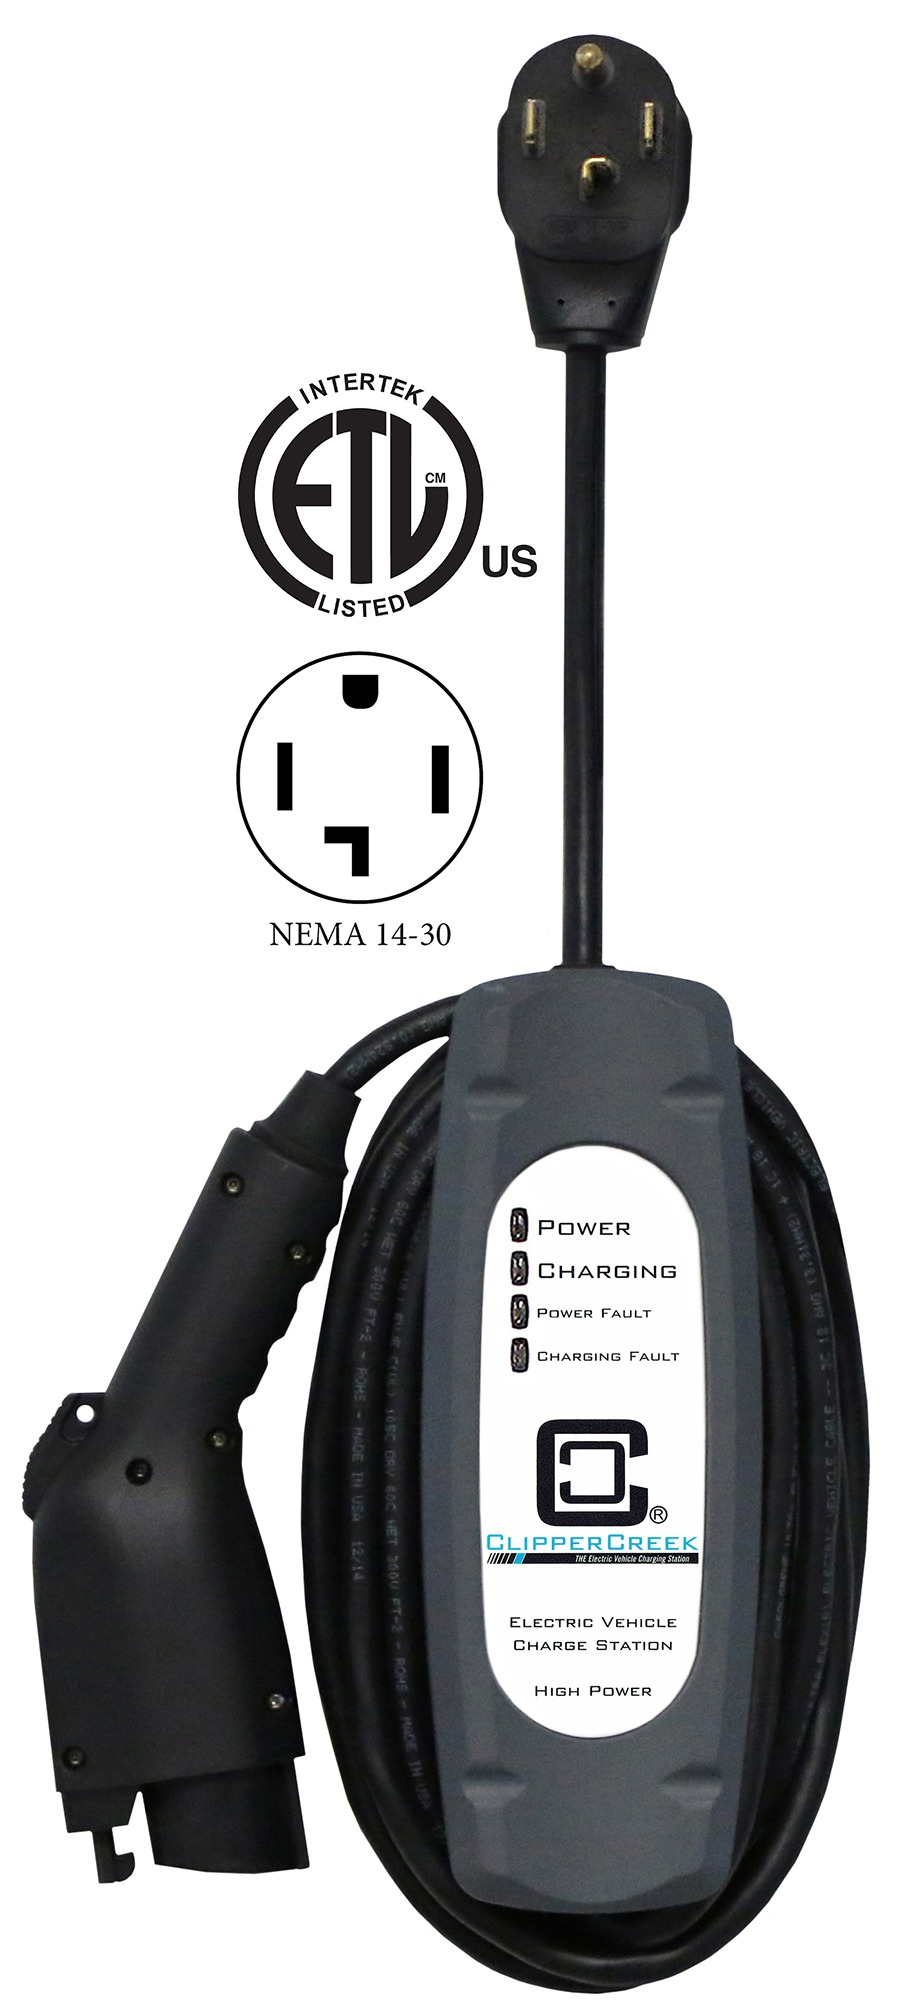 What Plugs Are Available On Ev Charging Stations Extension Cord 30 Amp Wiring Diagram Nema 6 50 50a Plug This Is Common For Welders Or Plasma Cutters Its Installed Onto A Dedicated Circuit To Match The Rating Of